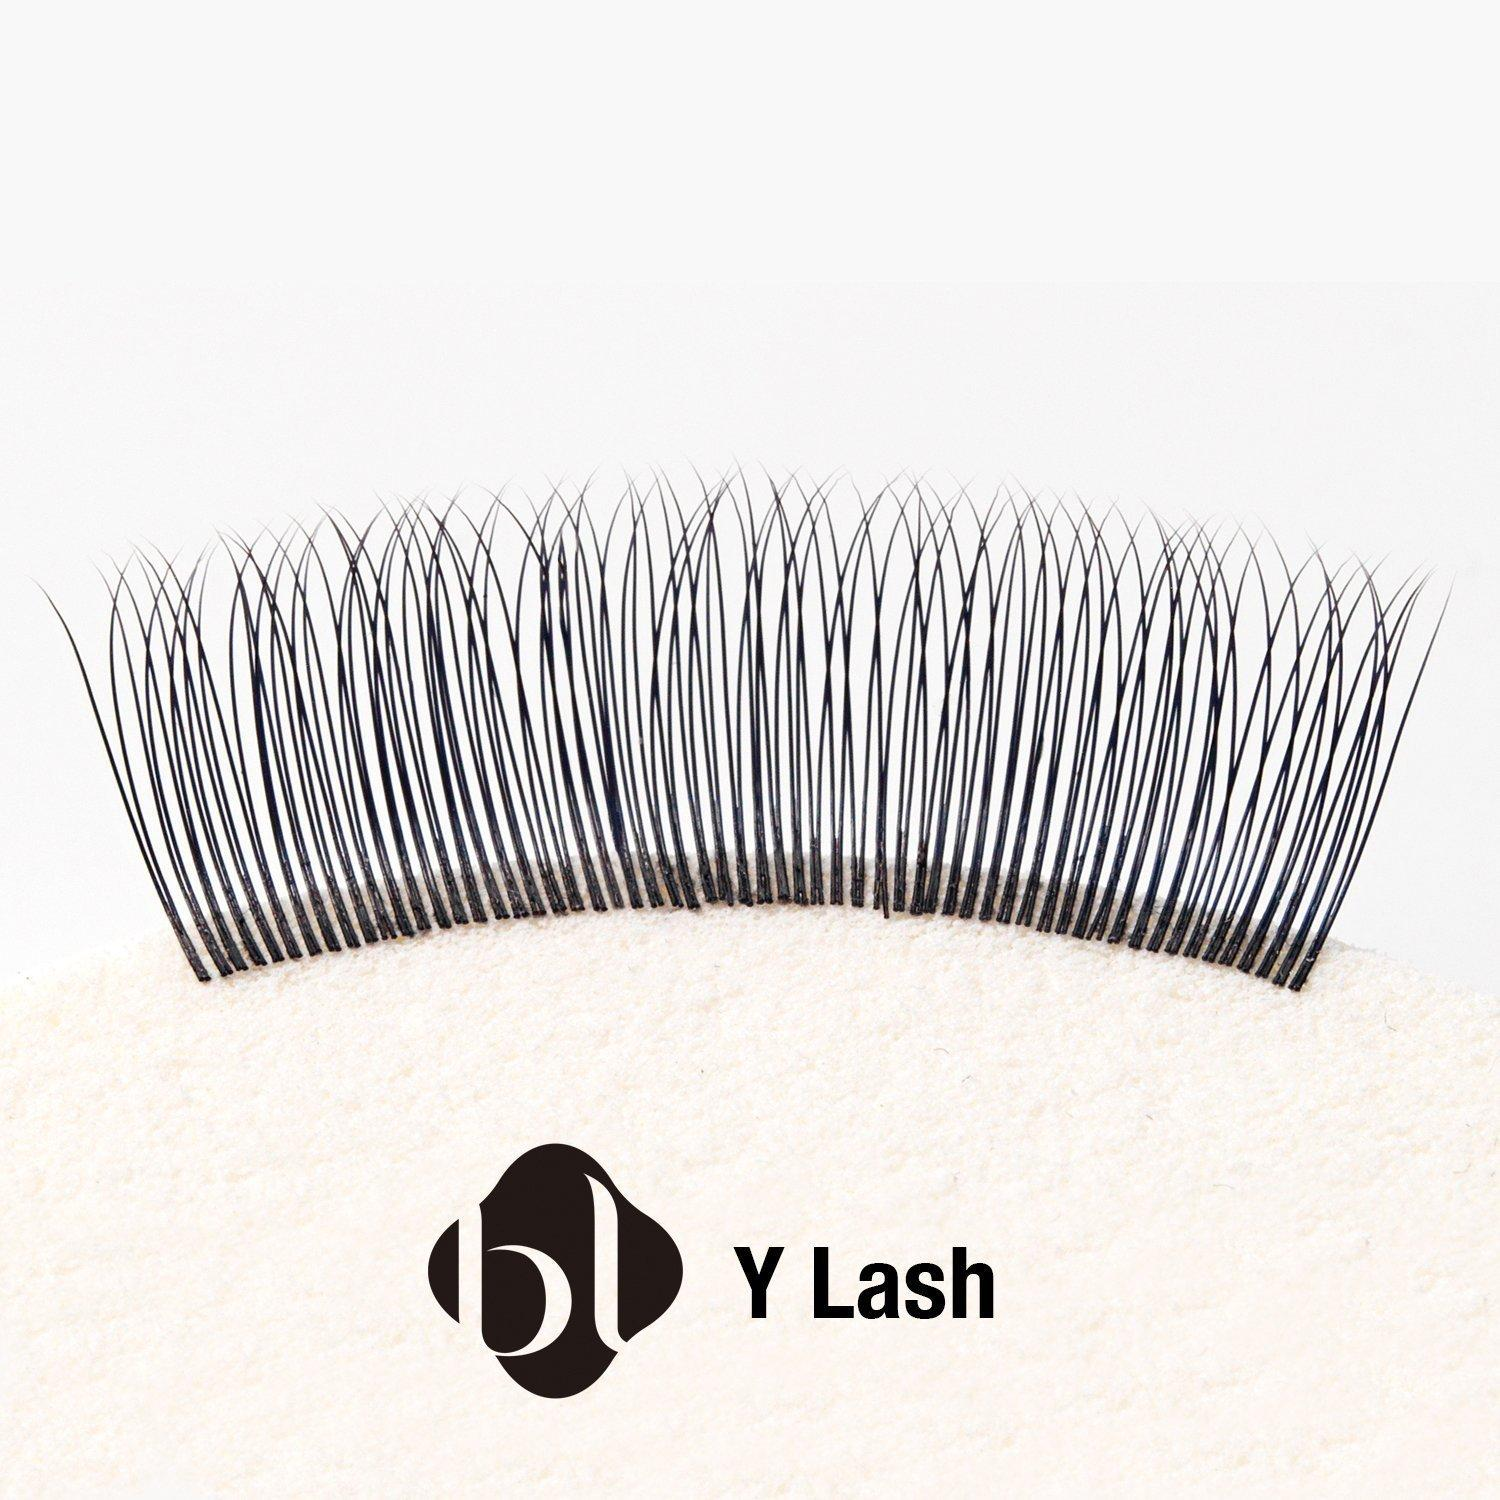 Blink BL Lashes 0.10 10 mm eyelash extensions from South Korea